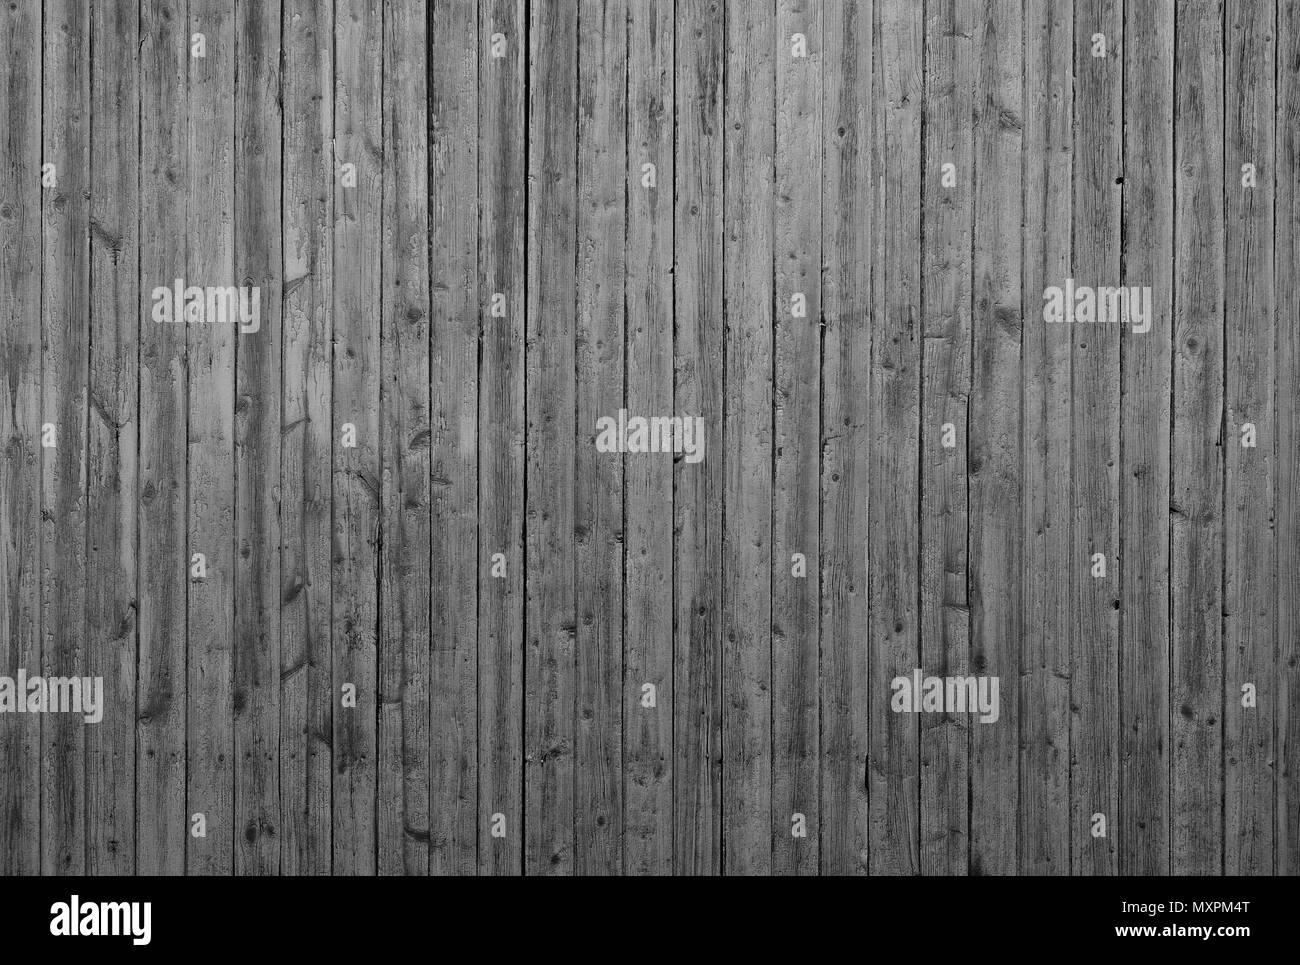 Wooden wall with vertical planks. Close up of an old wooden fence panels - Stock Image